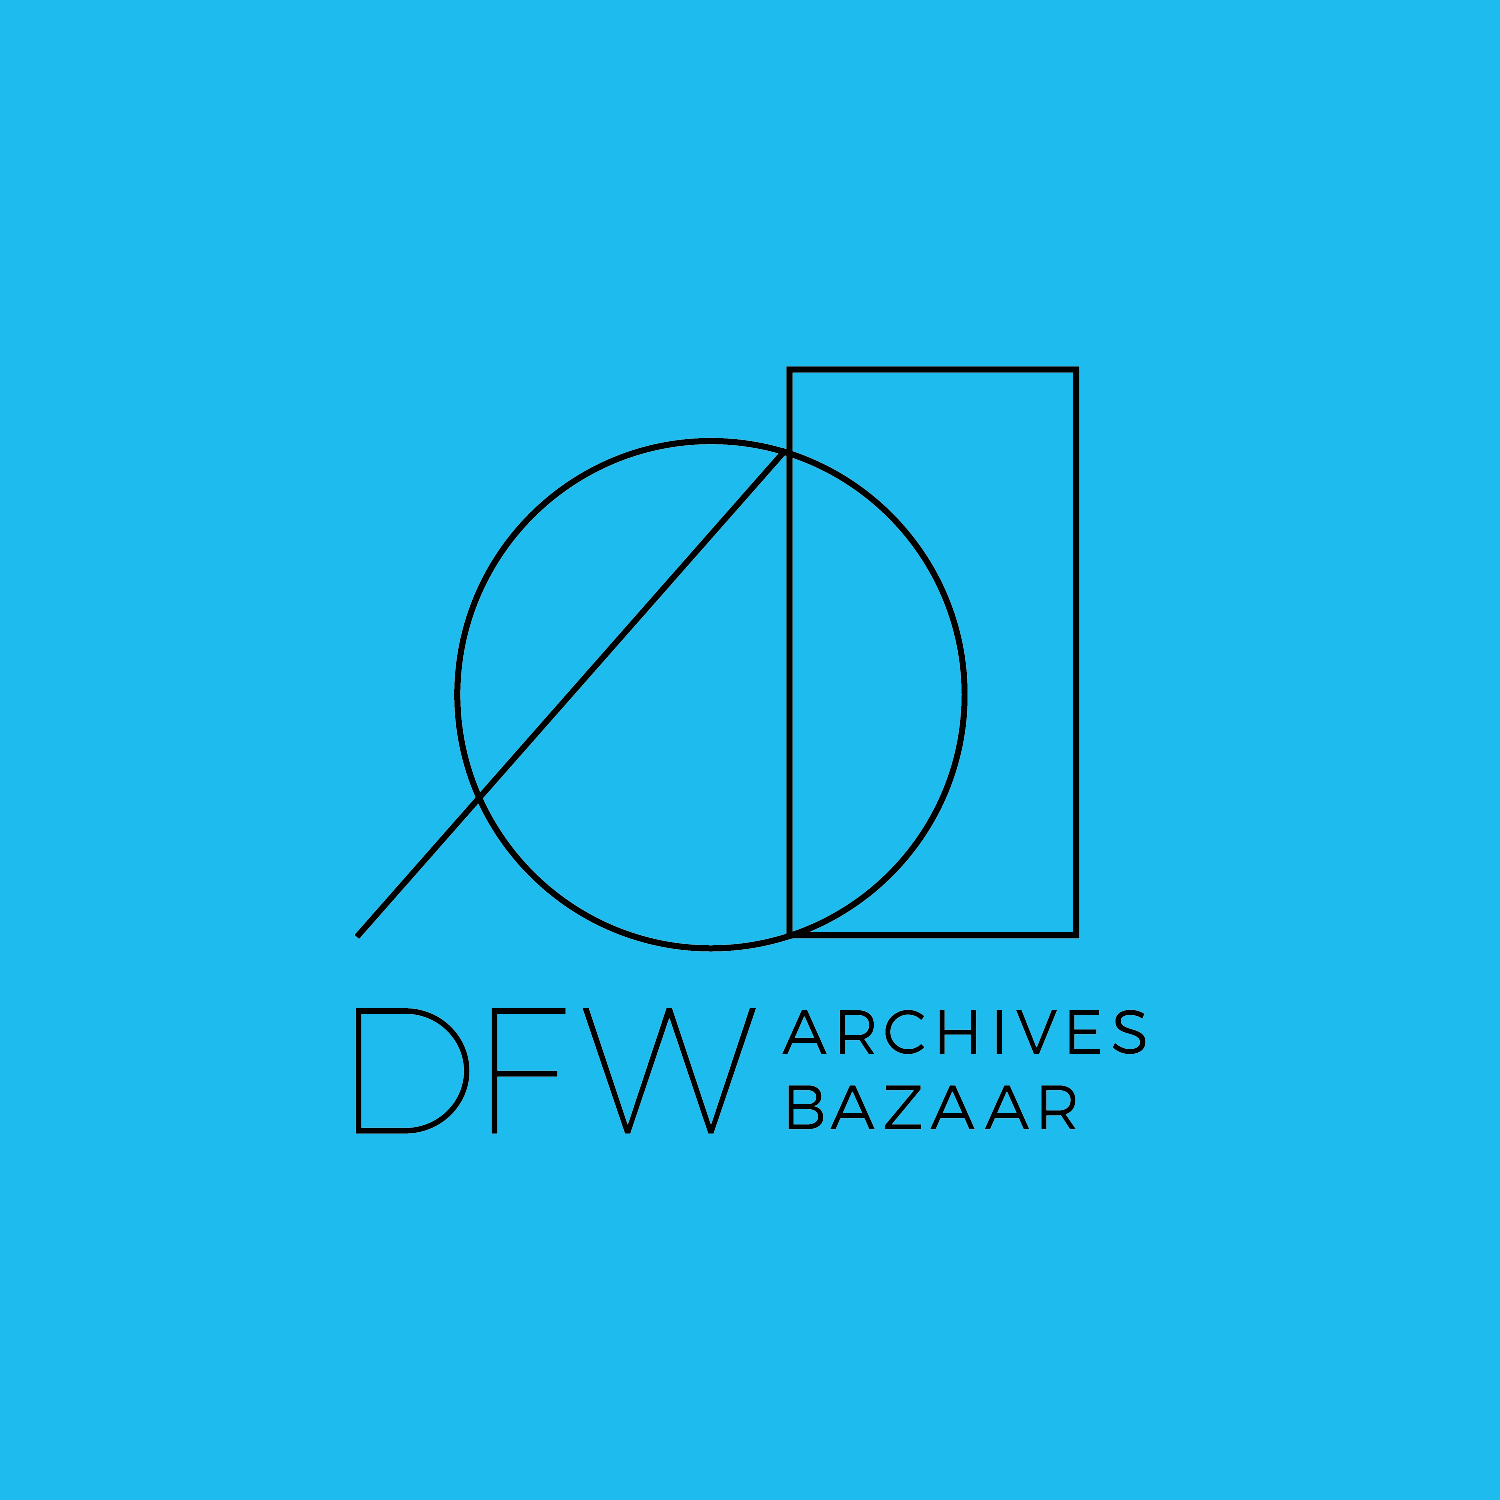 DFW_ArchivesBazaarlogo_explorer